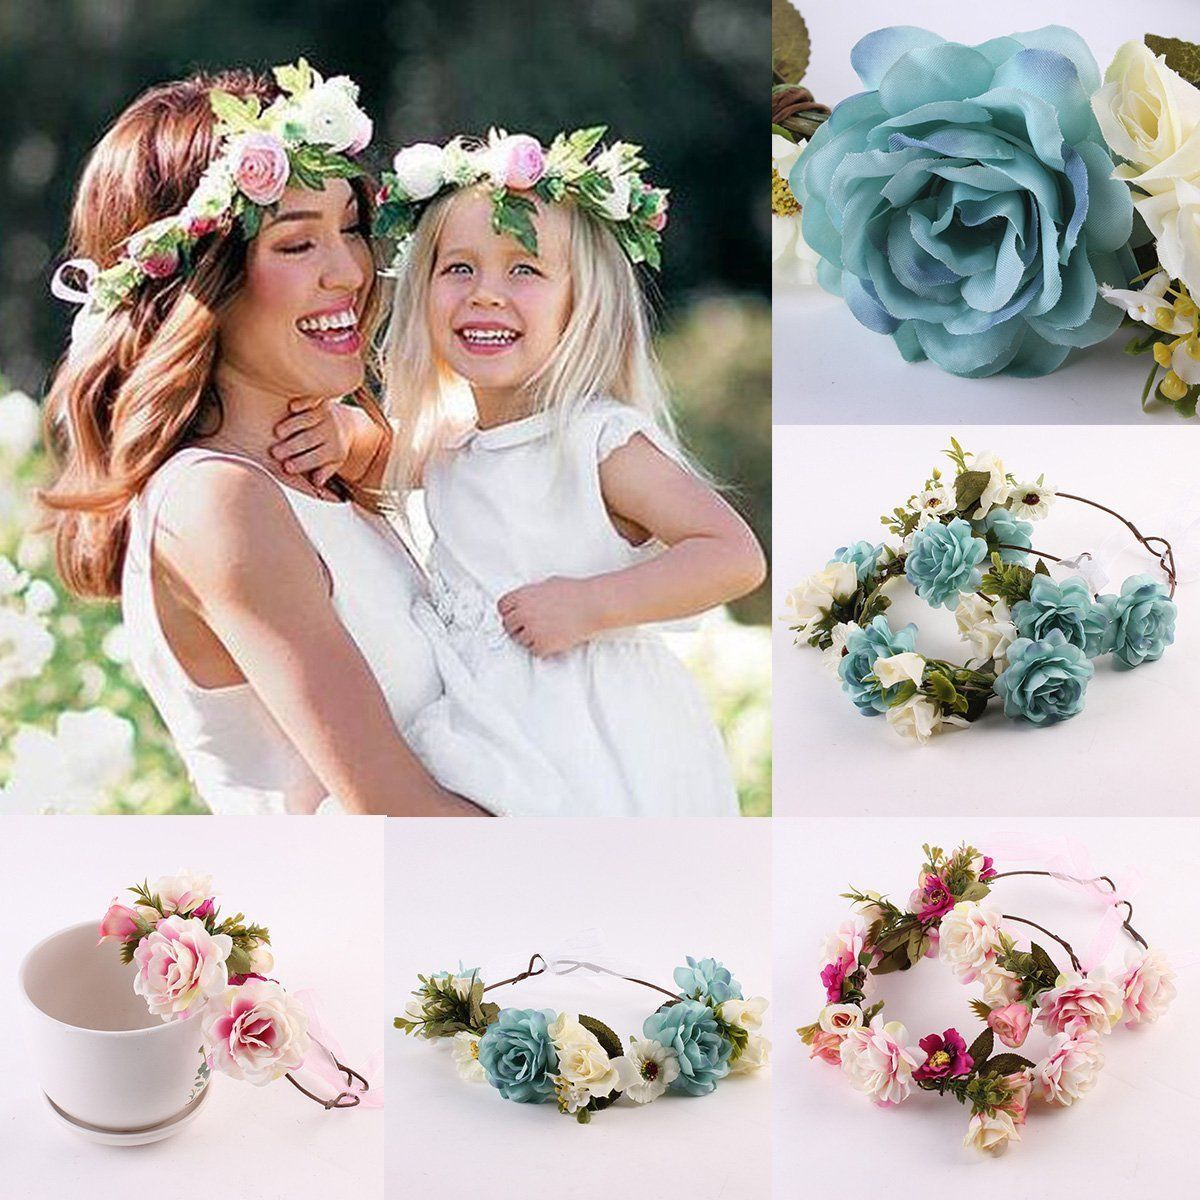 Women Flowers Hairware Cute Beautiful Decor Girls Wedding Flowers Hair Headbands Crown Prop Garland For Wedding Party Decor 2019